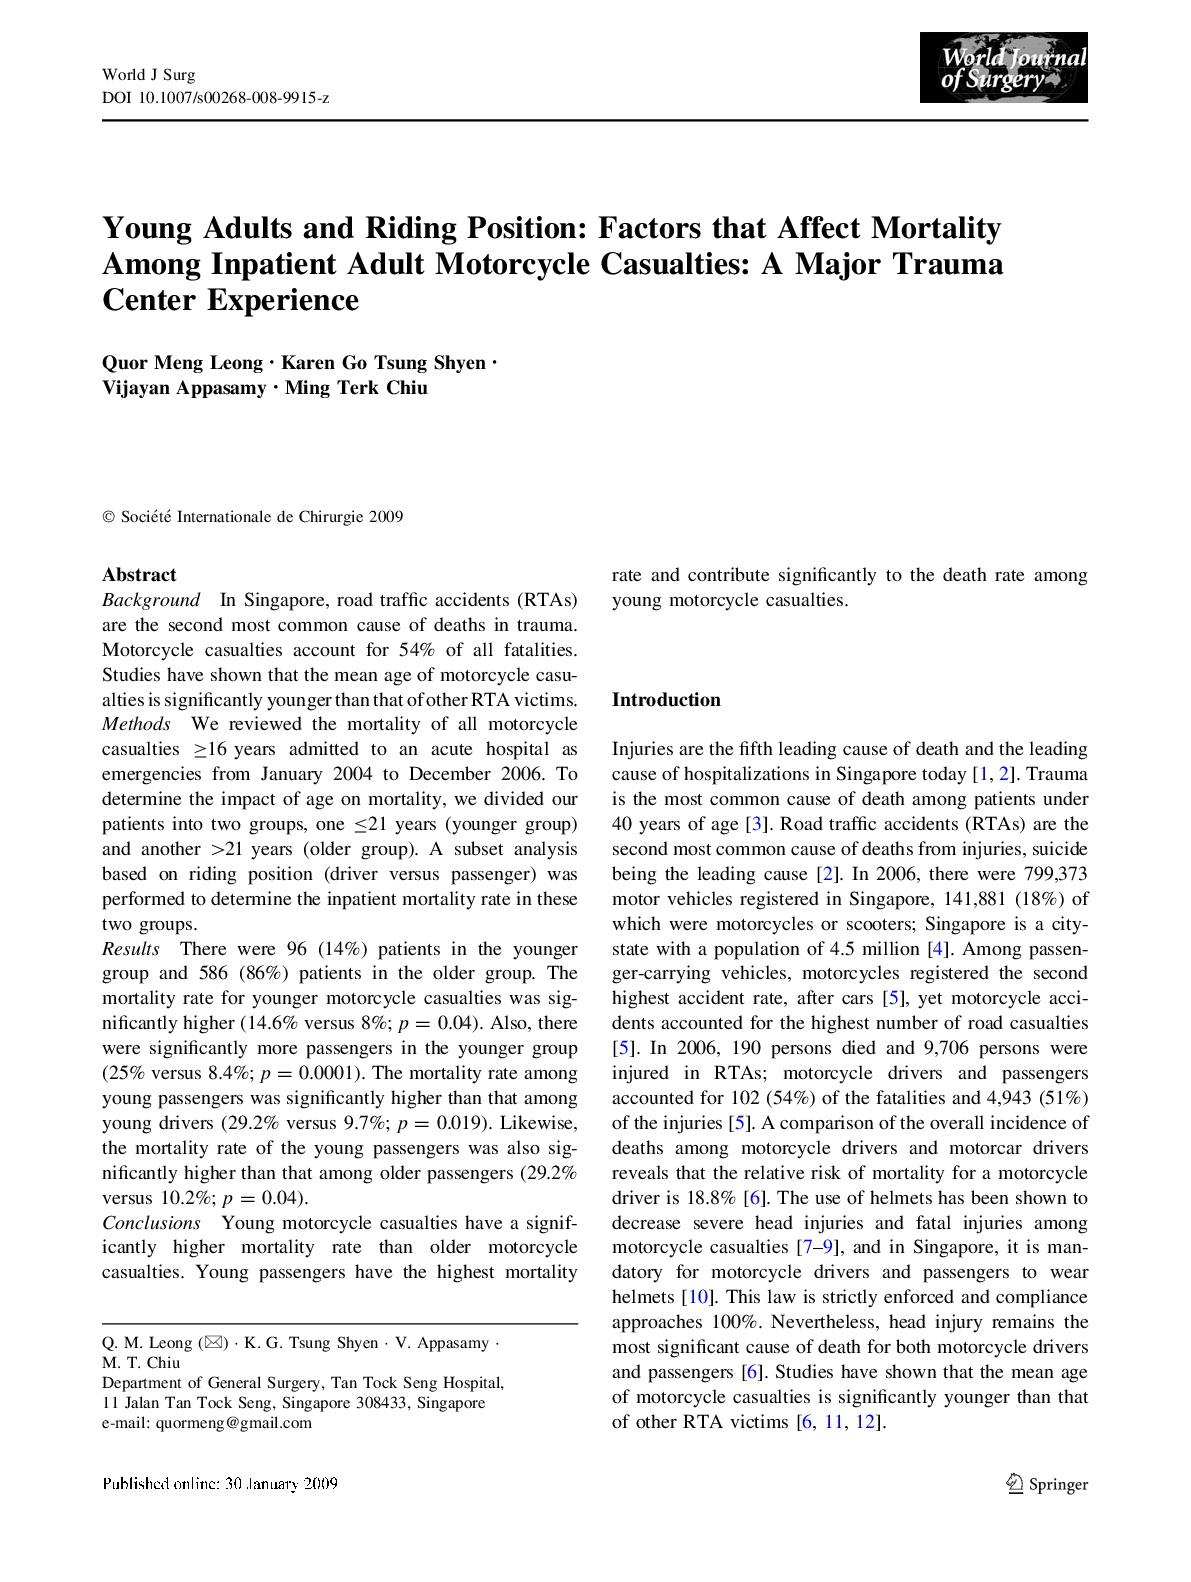 Factors that Affect Mortality Among Inpatient Adult Motorcycle Casualties